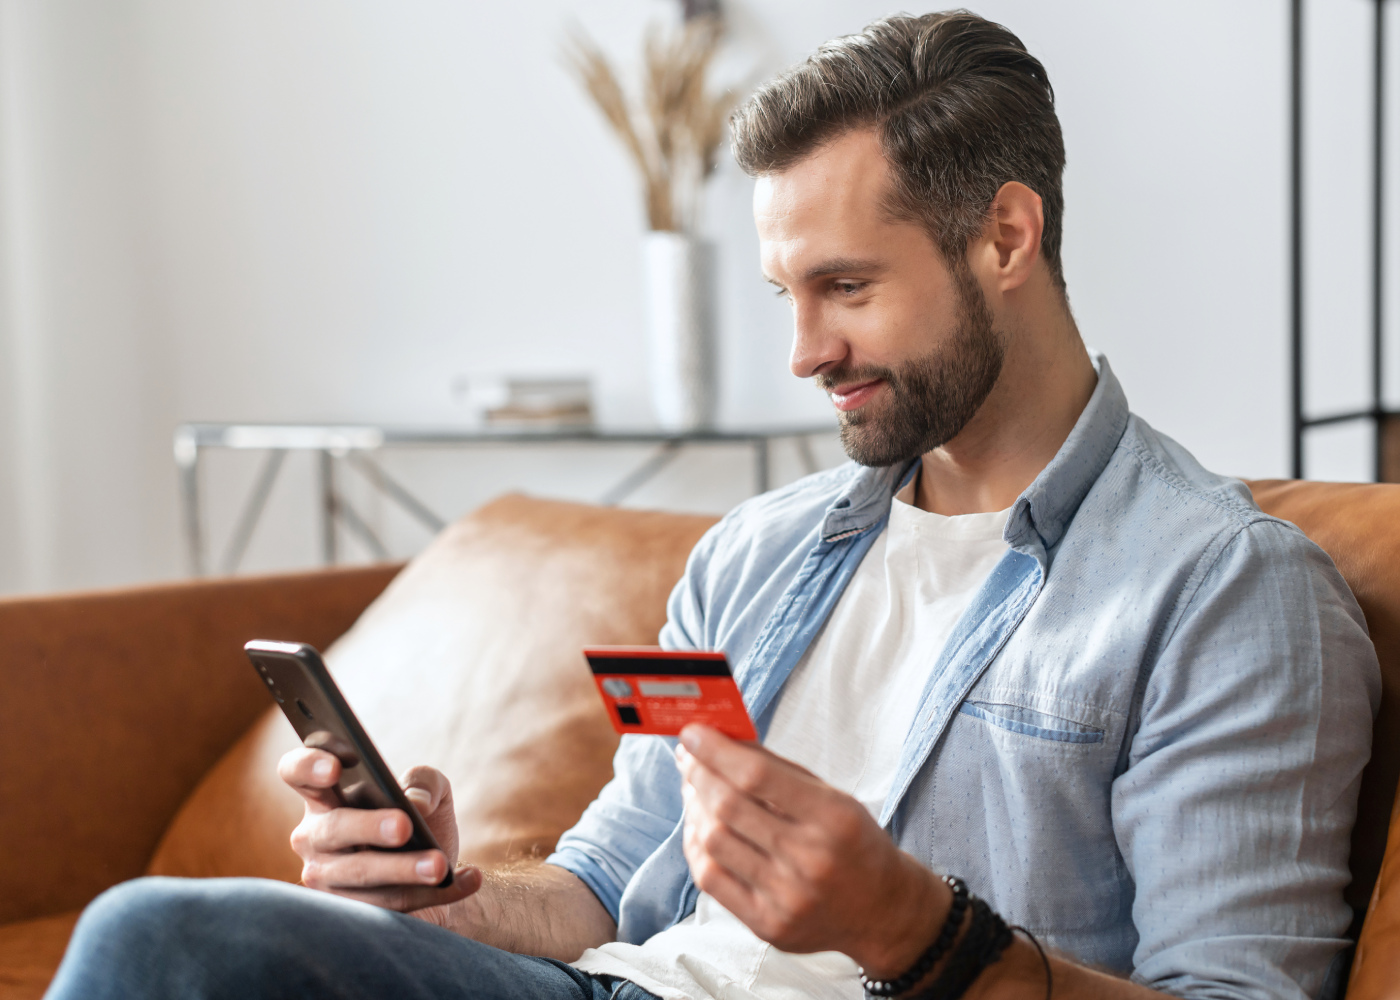 A man sitting on a brown sofa making a payment with his credit card